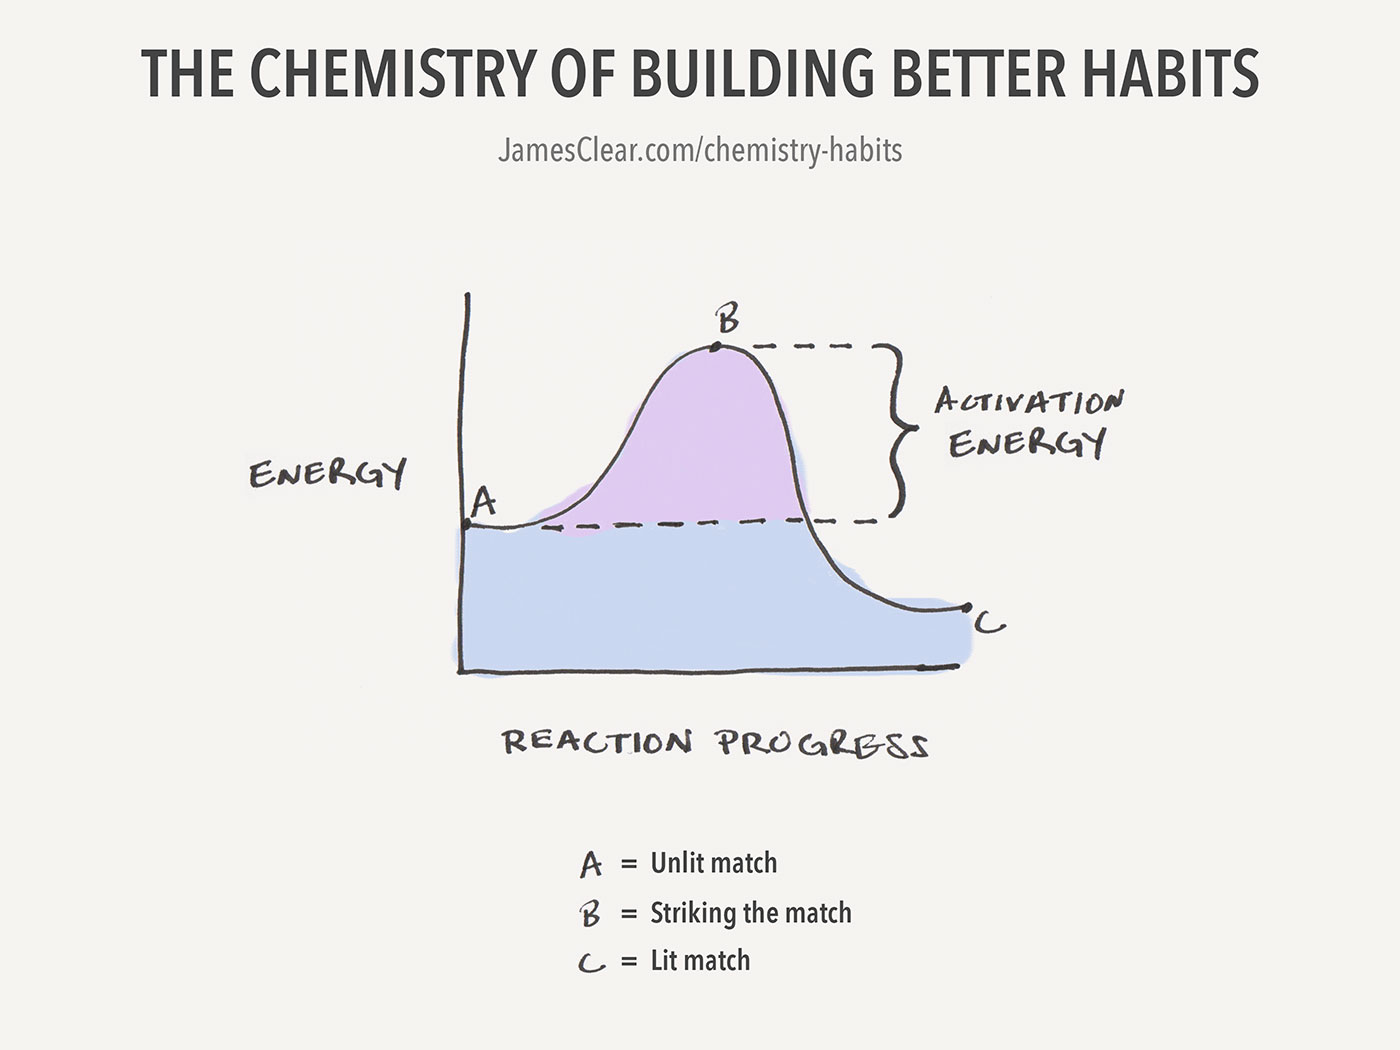 Use Activation Energy to start a simple habit